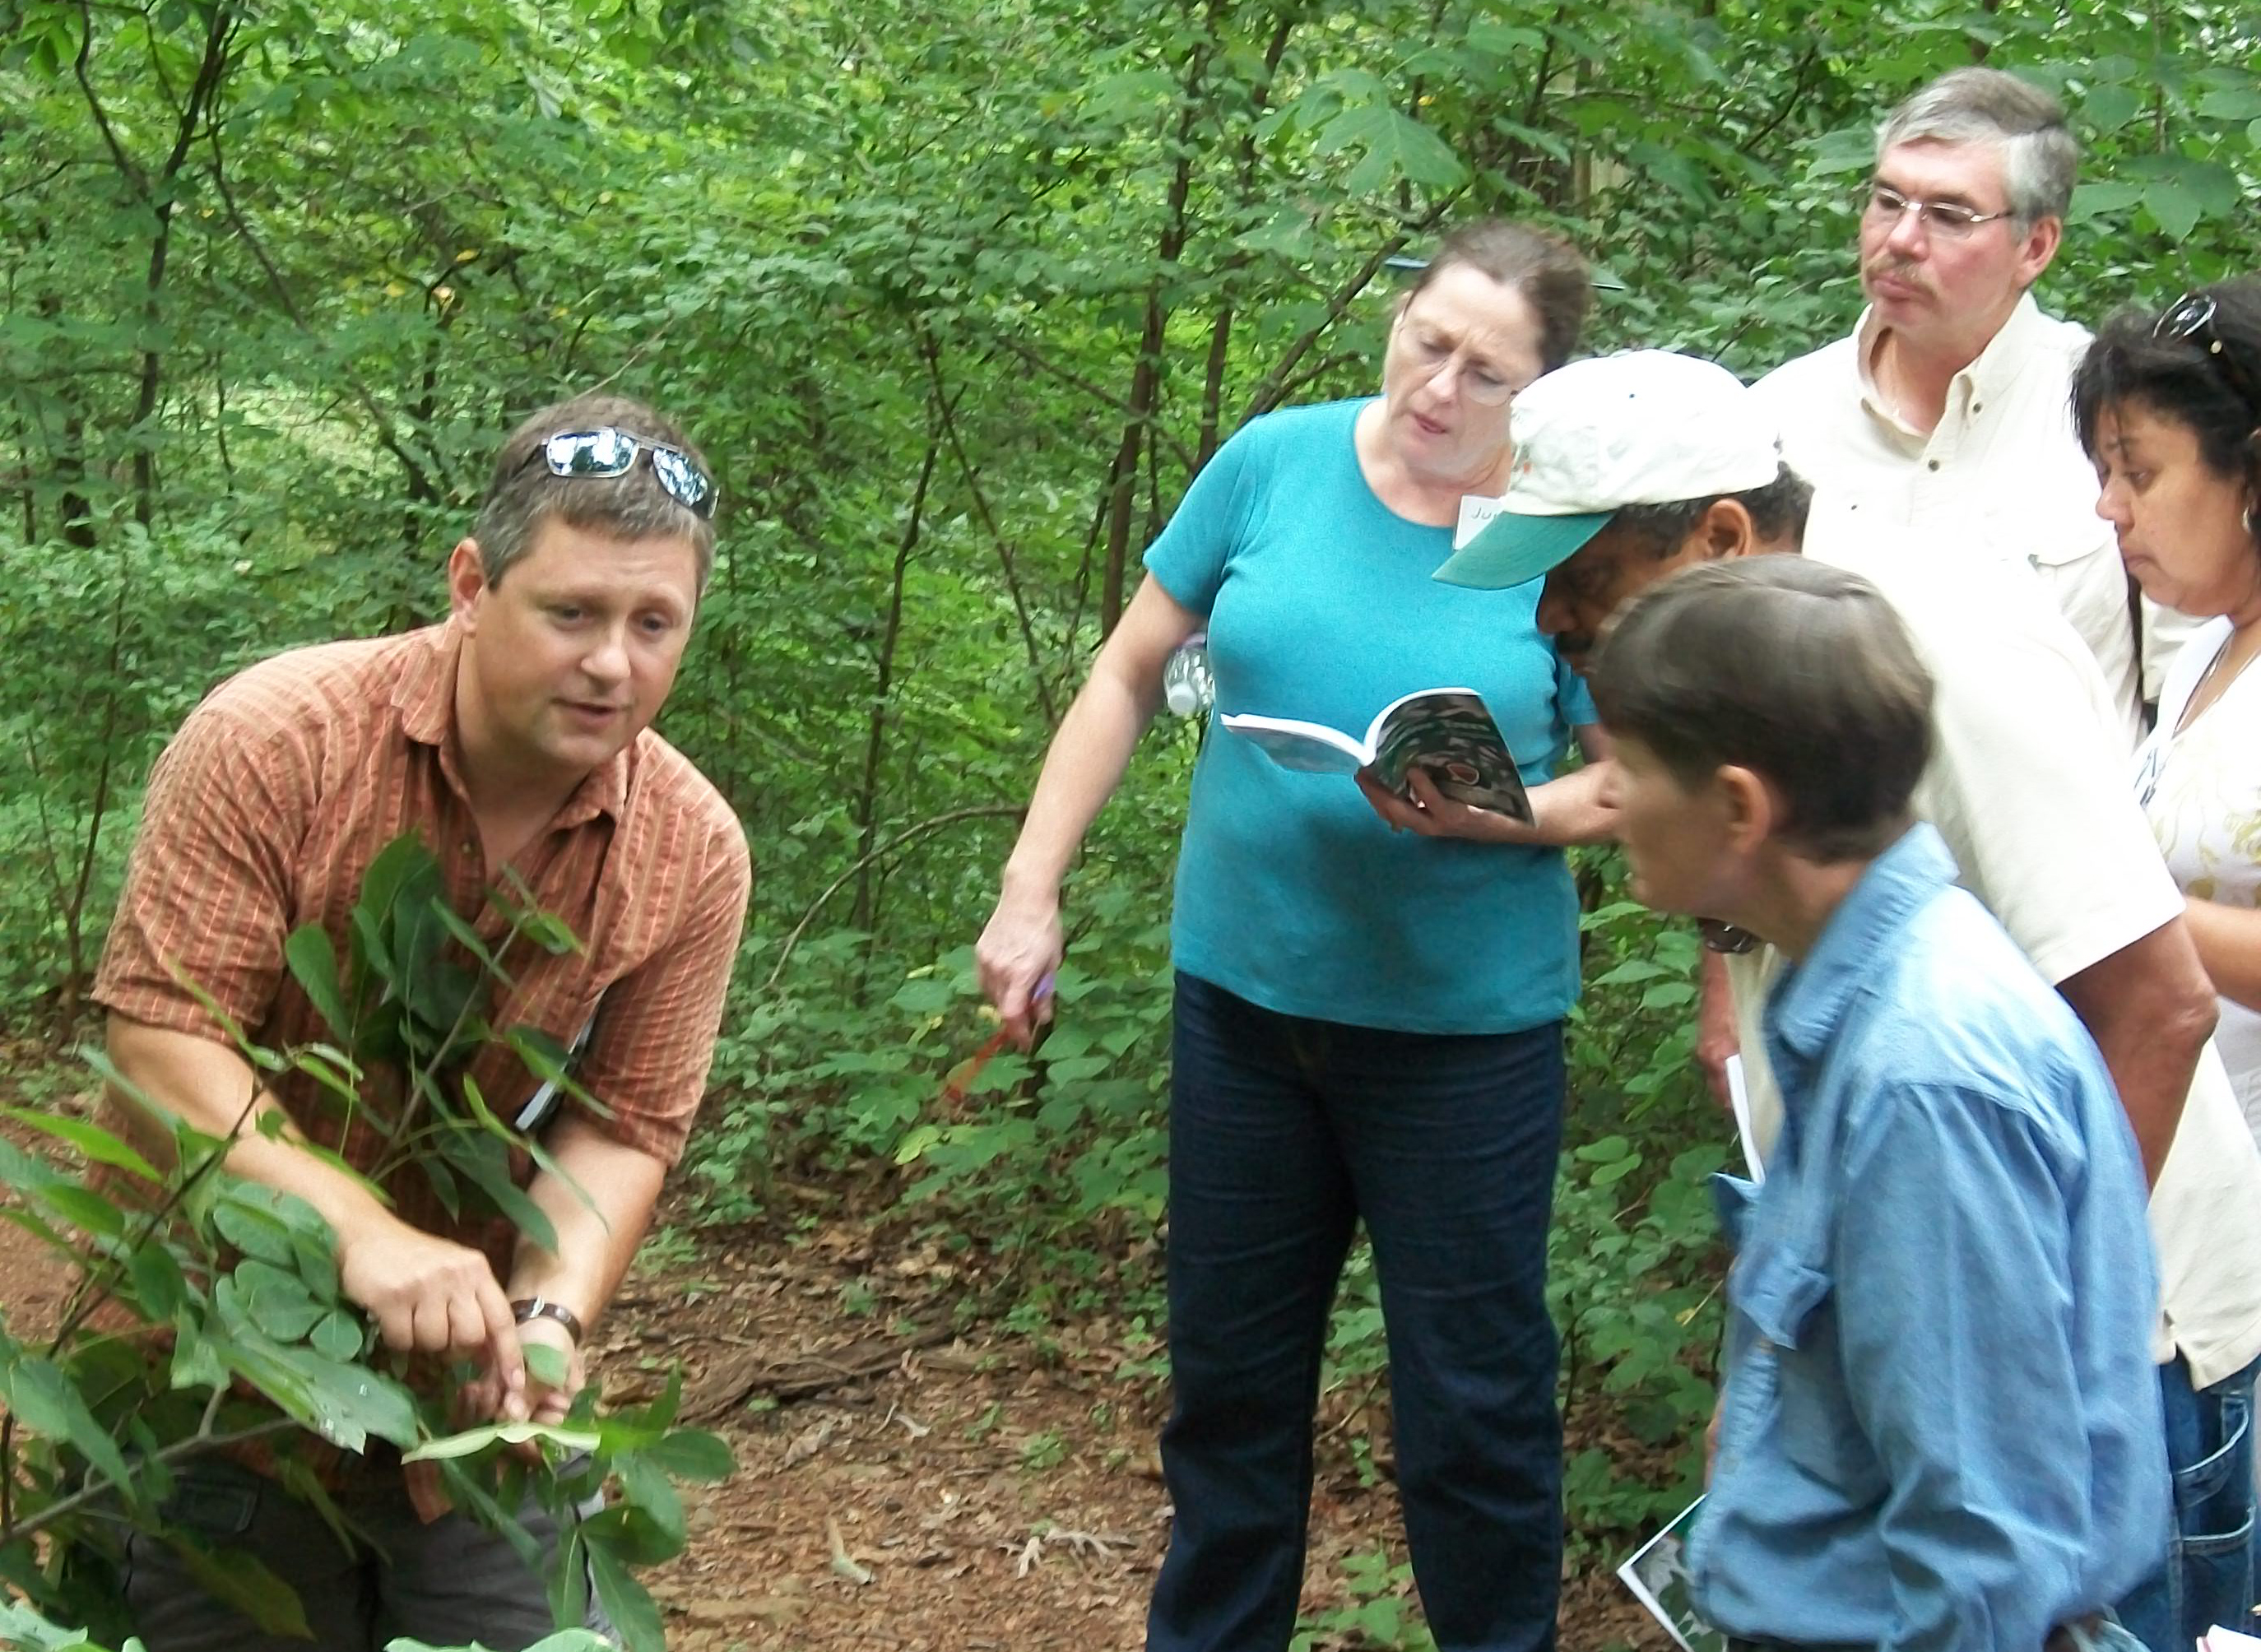 In a forest setting, John Peterson points to leaves on a bush while students look on.